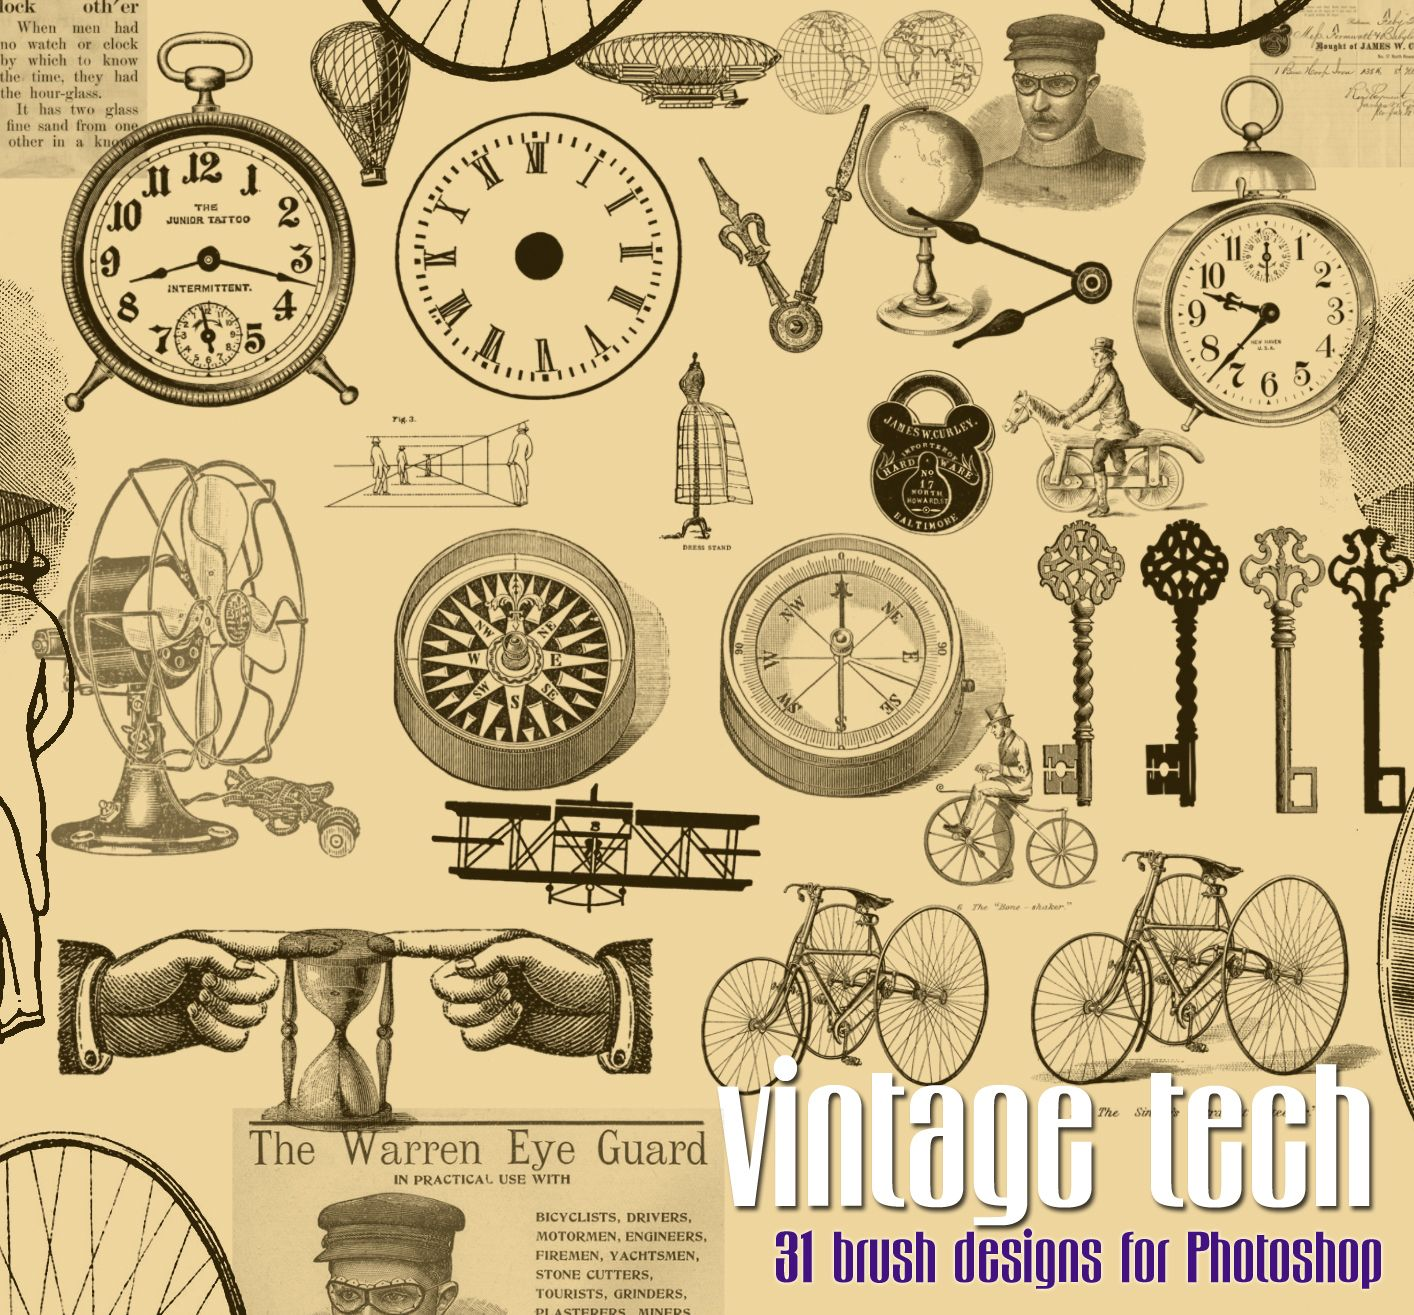 free printable steampunk images | Vintage Download – Steampunk Brushes for Photoshop